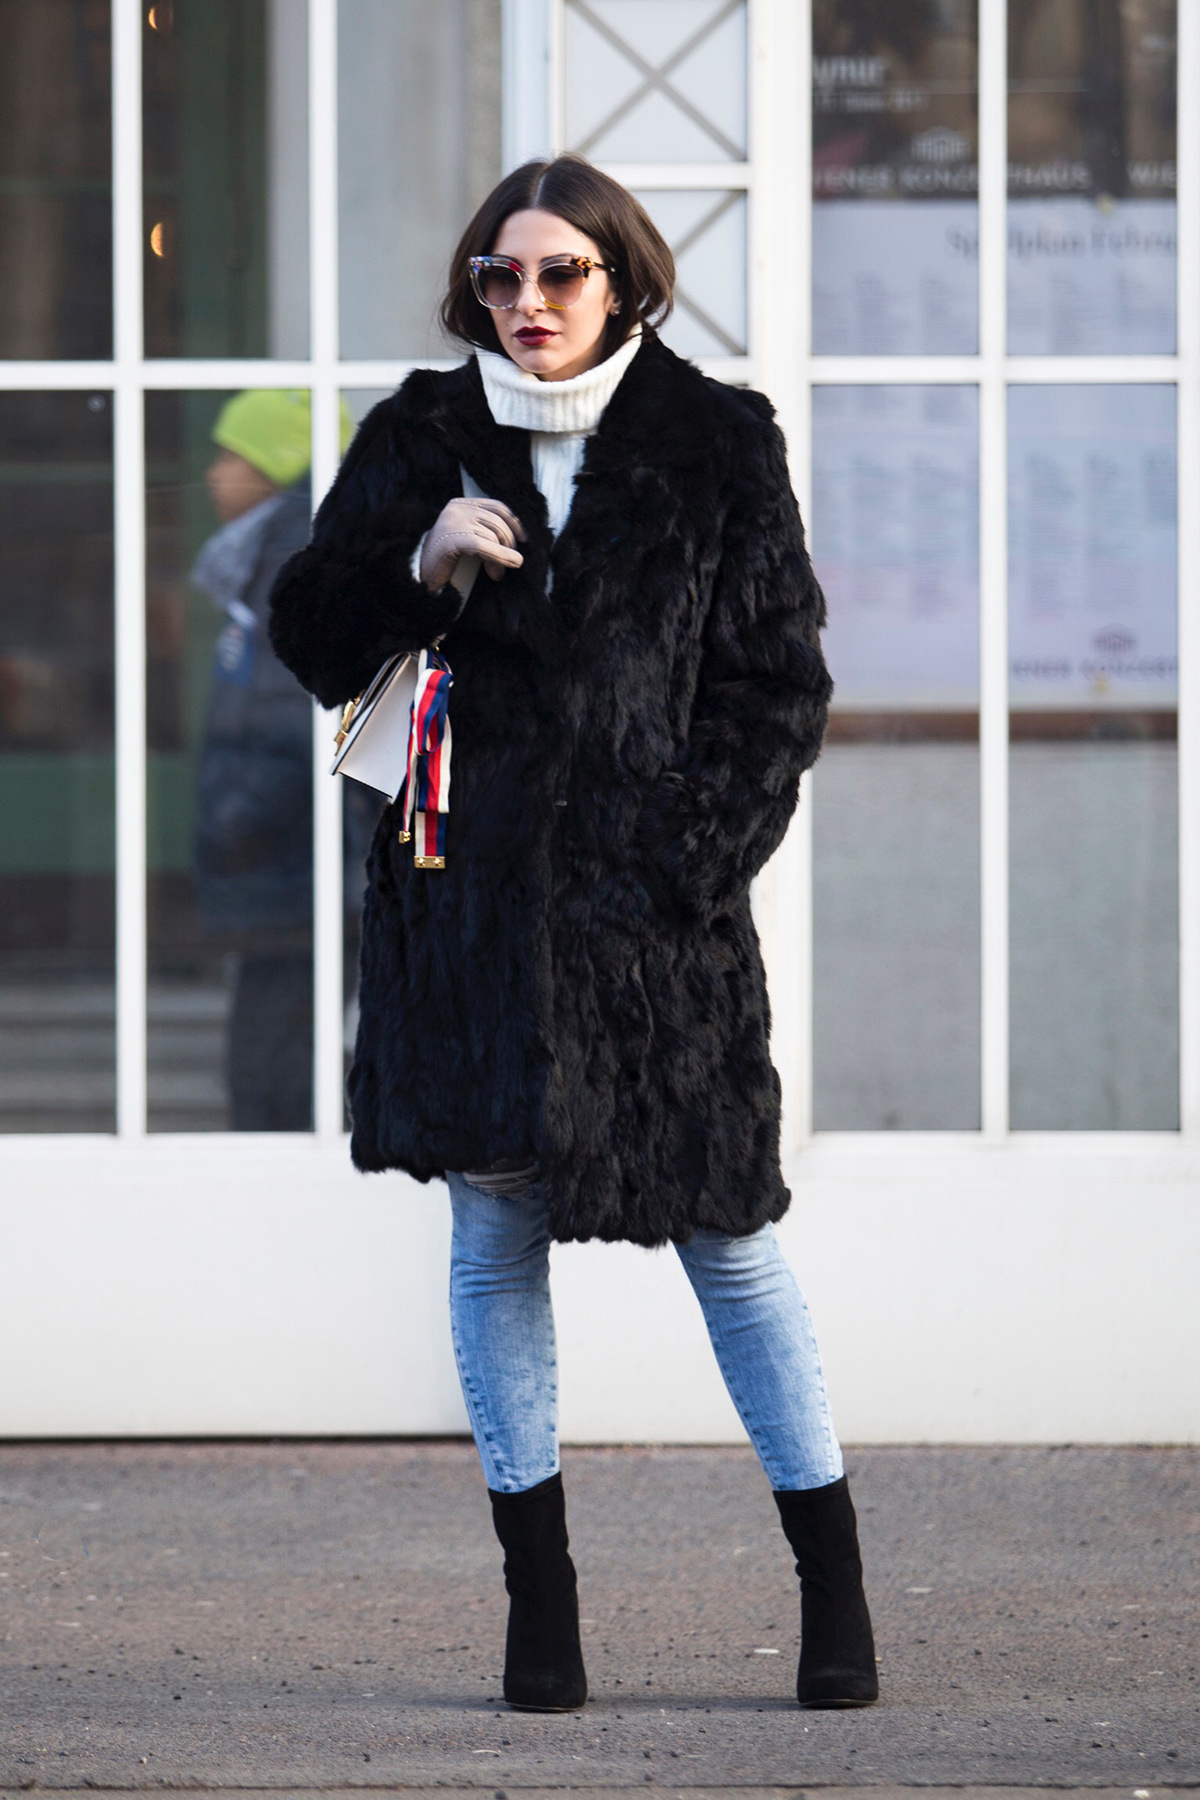 Fur Coat & Gucci Sylvie Bag in Vienna